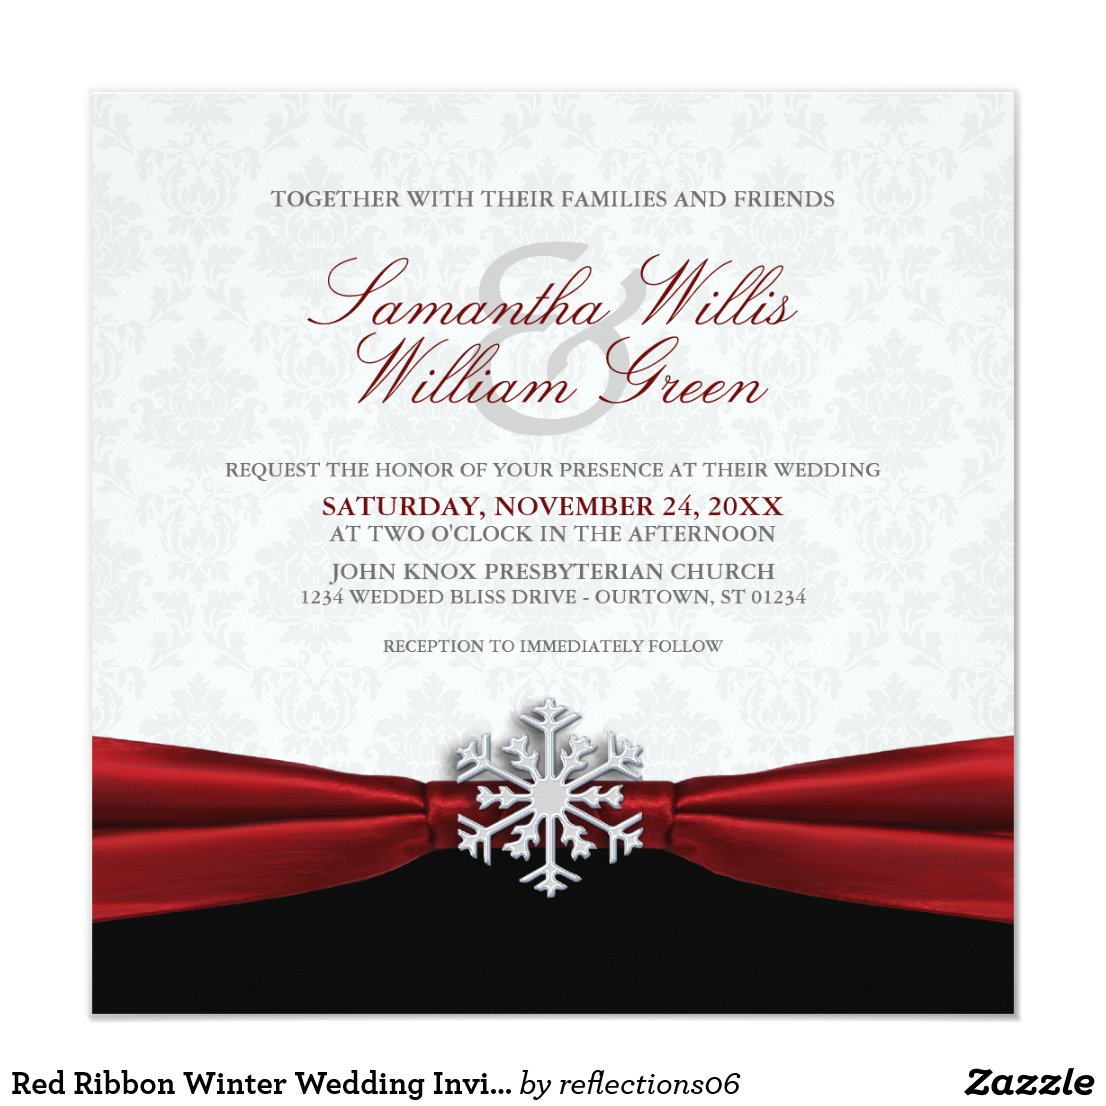 Red Ribbon Winter Wedding Invitation